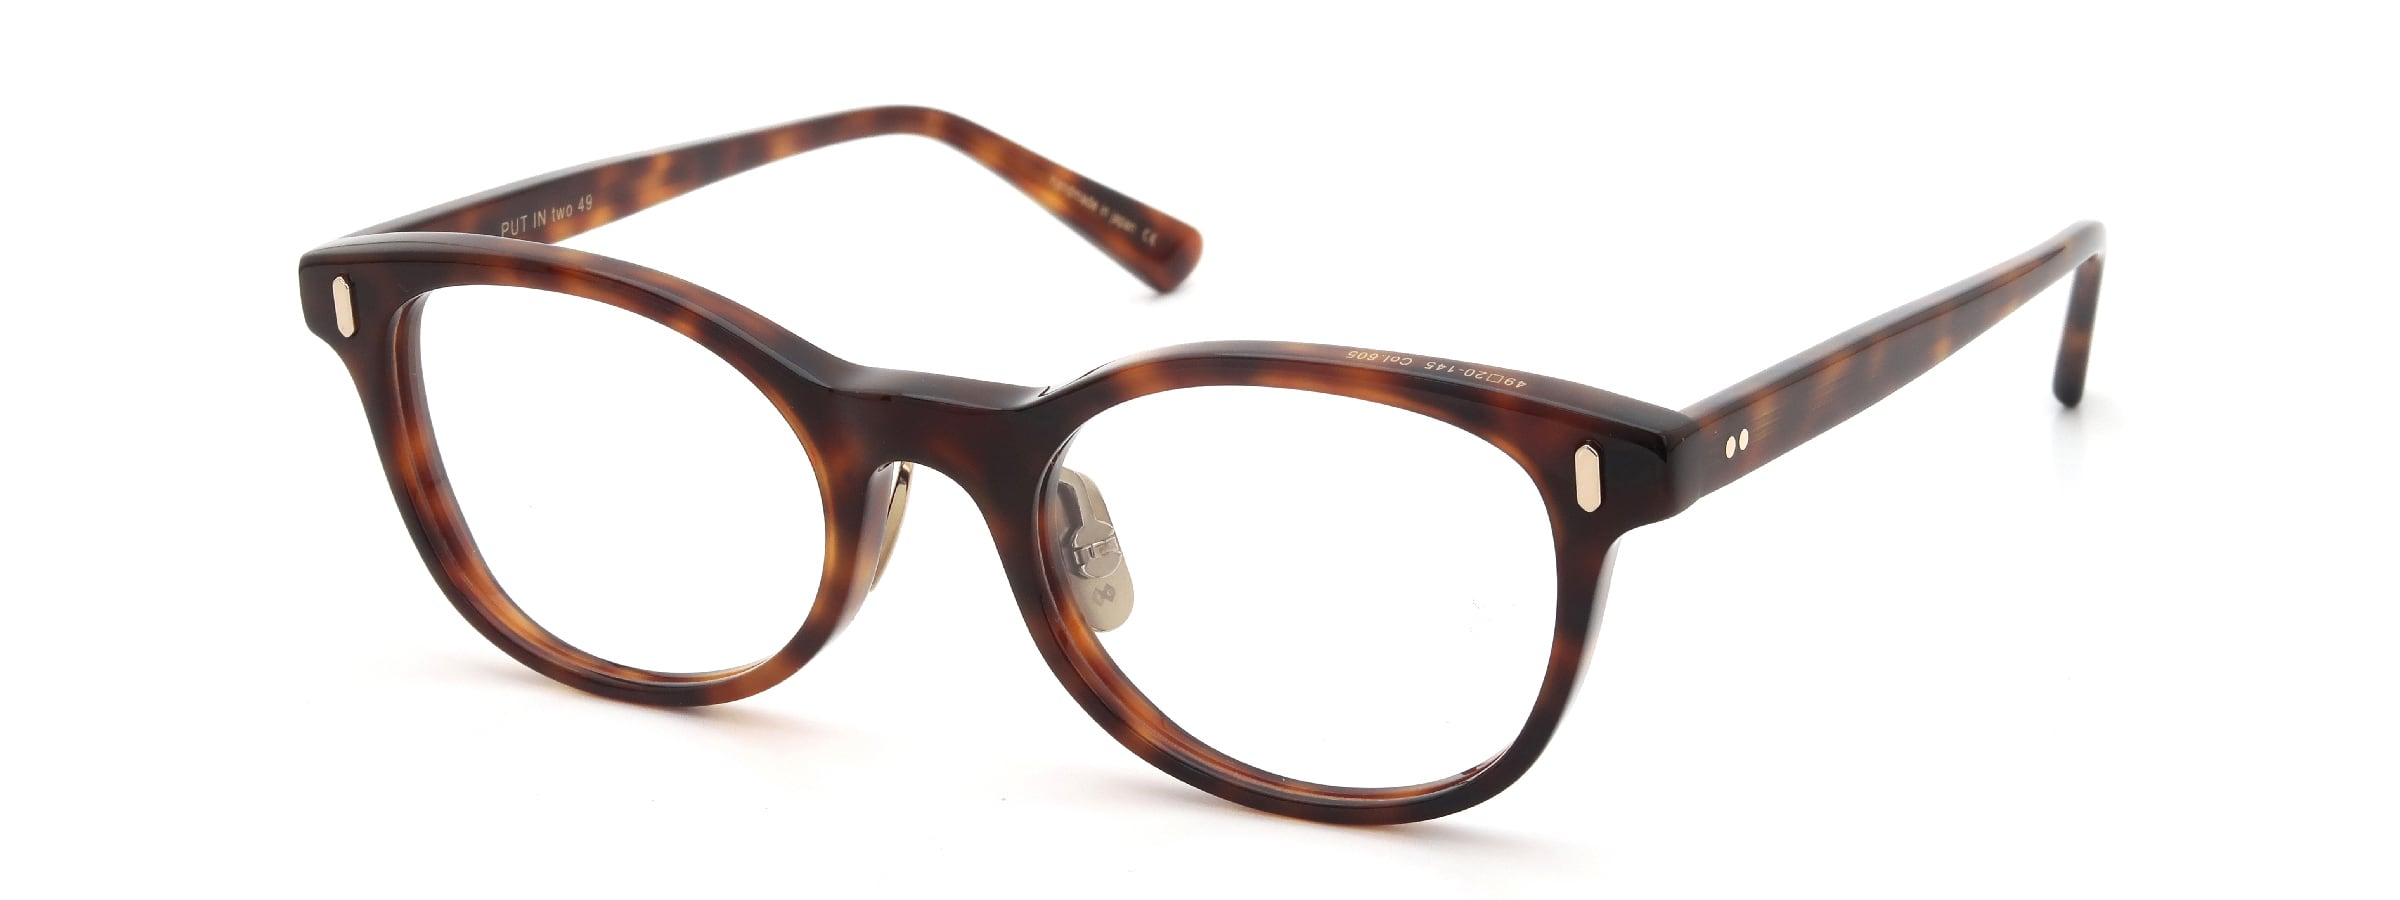 OG × OLIVER GOLDSMITH PUT IN two 49